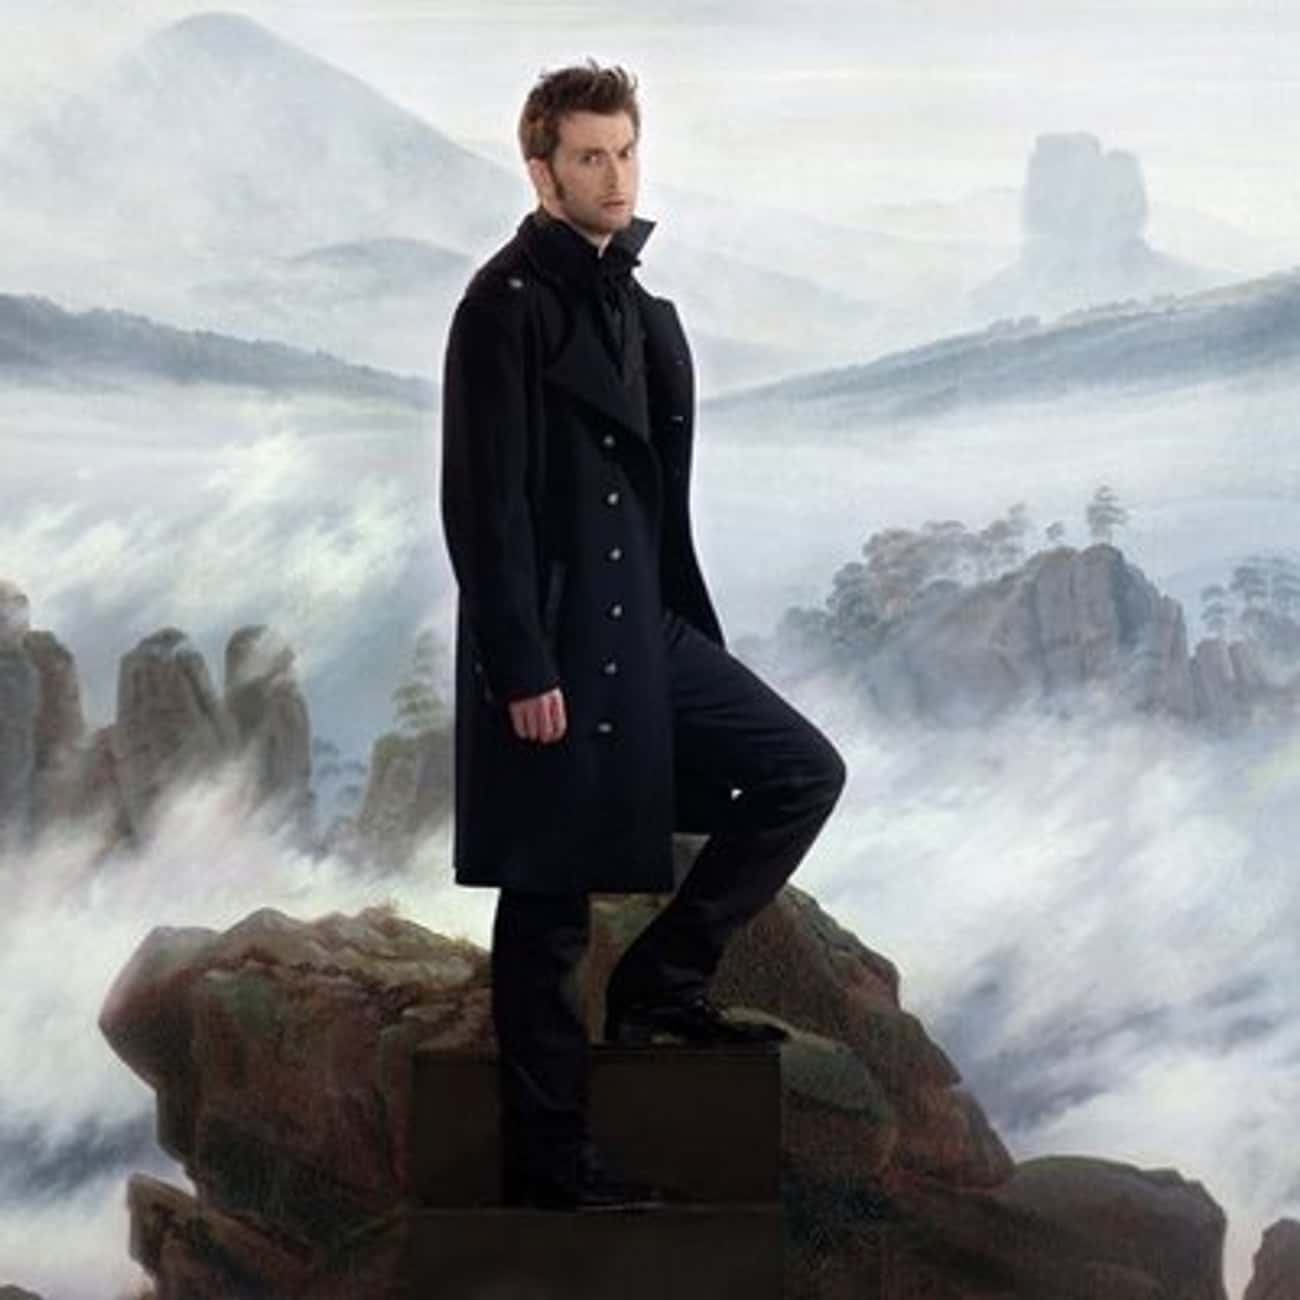 David Tennant in Oversized Boy is listed (or ranked) 3 on the list Hot David Tennant Photos